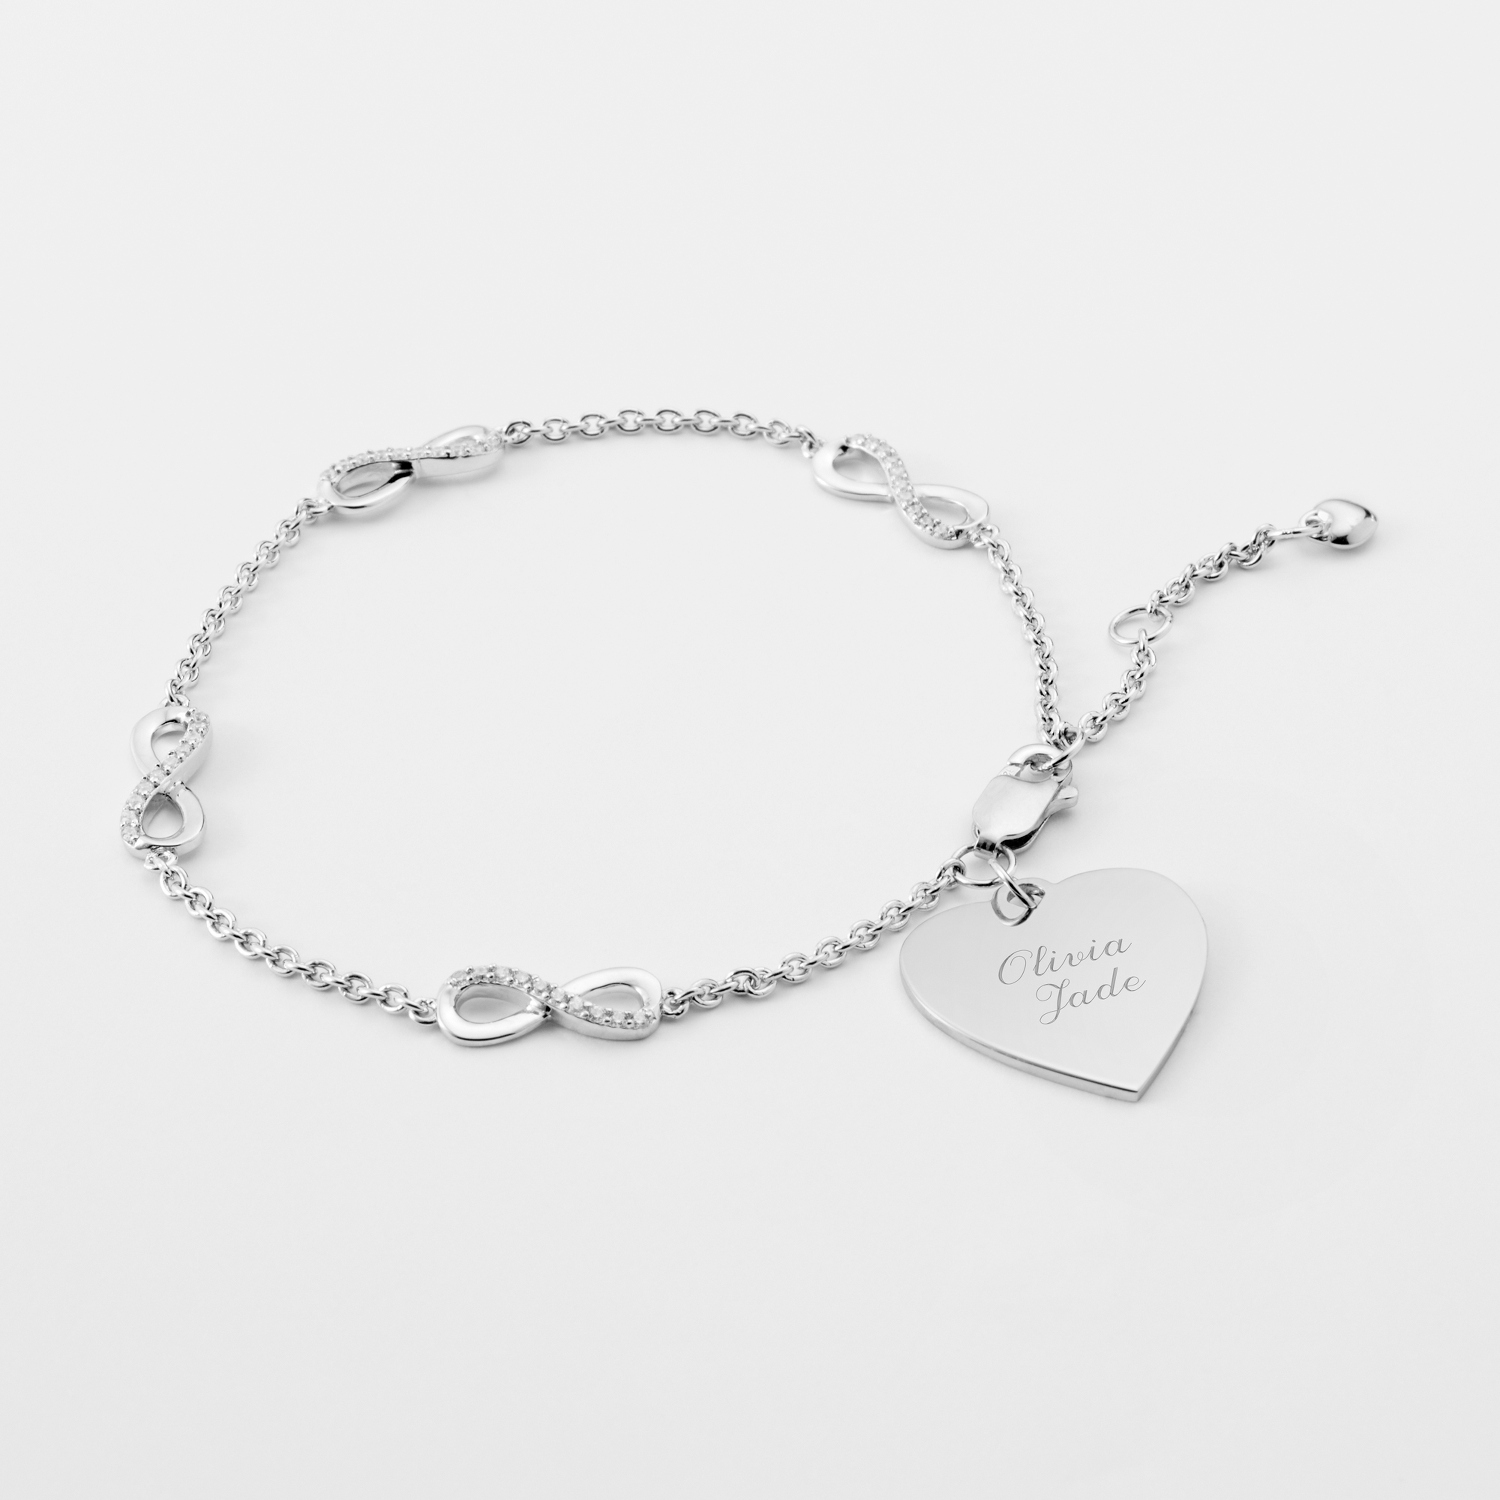 infinity joolsjewellery co ed uk jools products silver bracelet jewellery